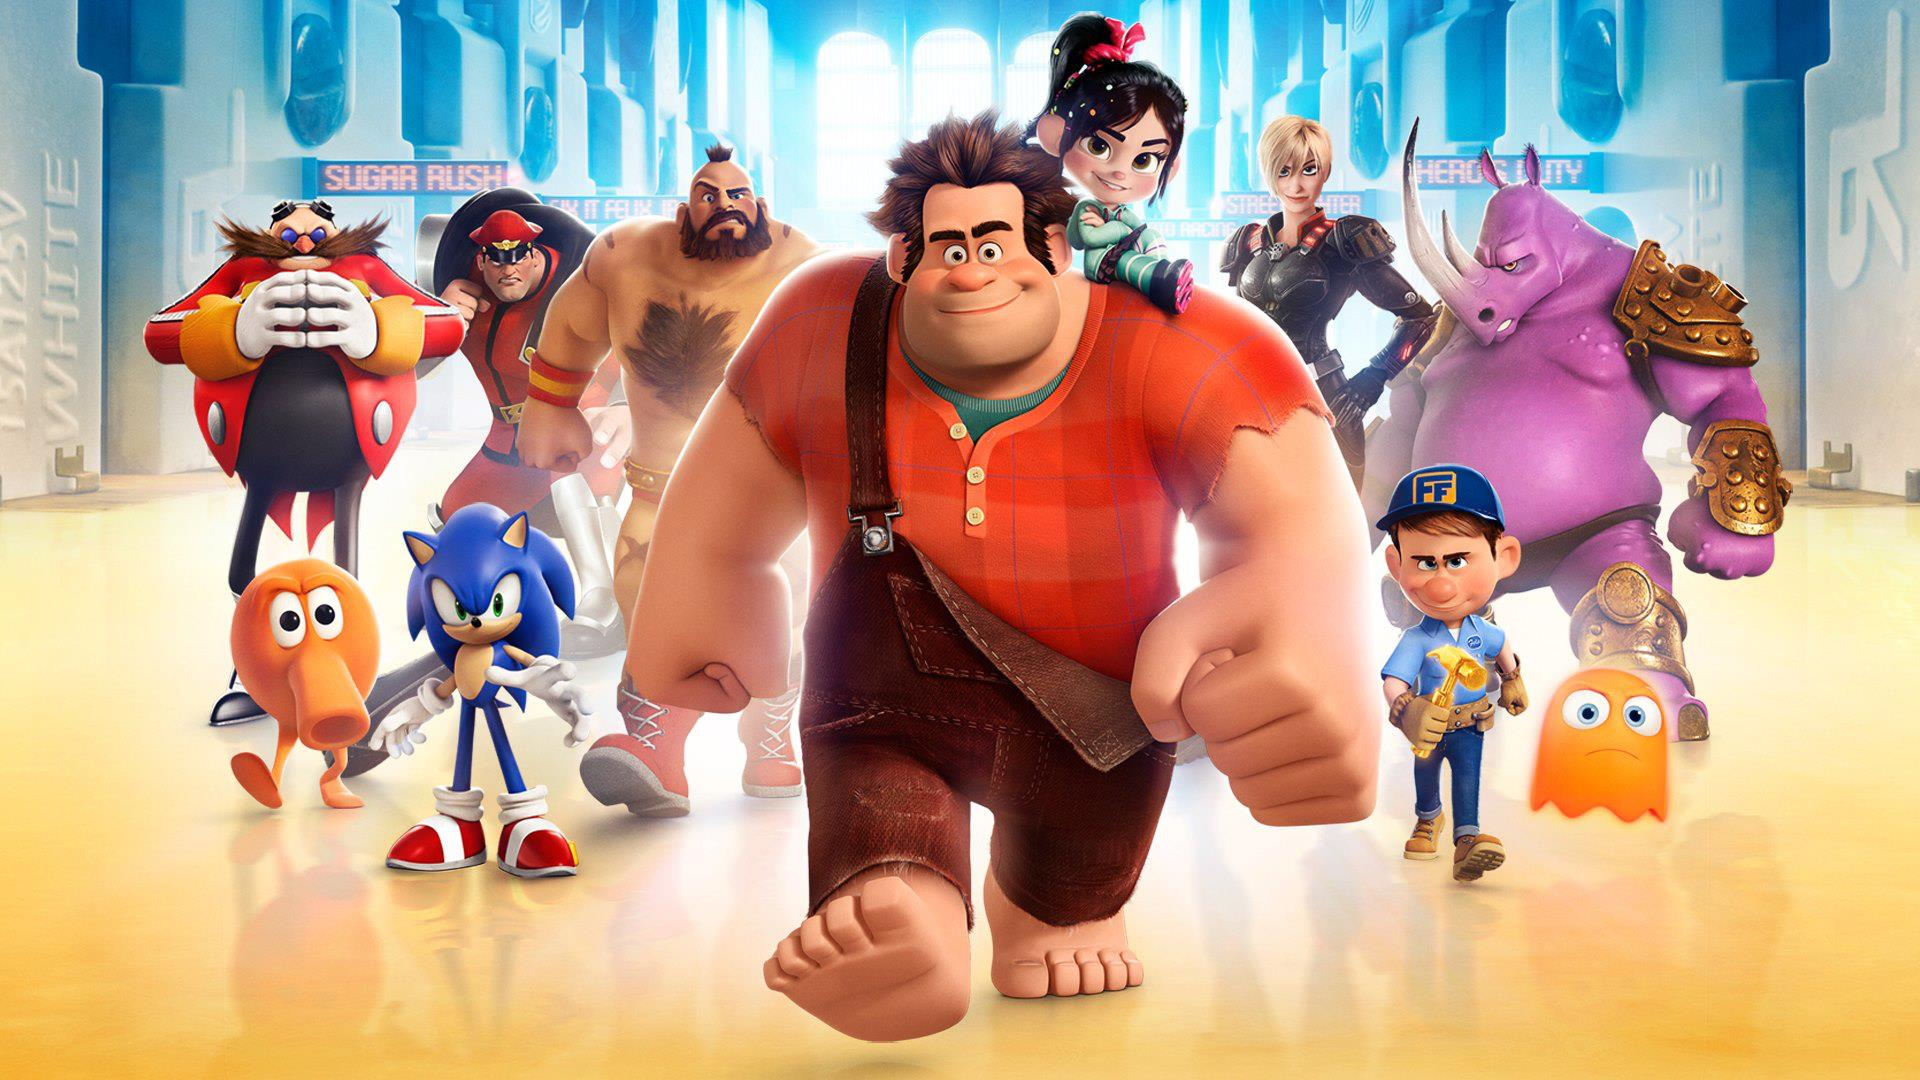 It is one of the most creative and visually complex films I've seen, filled with heart and humor. Tomorrow, Disney will release Wreck-It Ralph on Blu-ray, ...